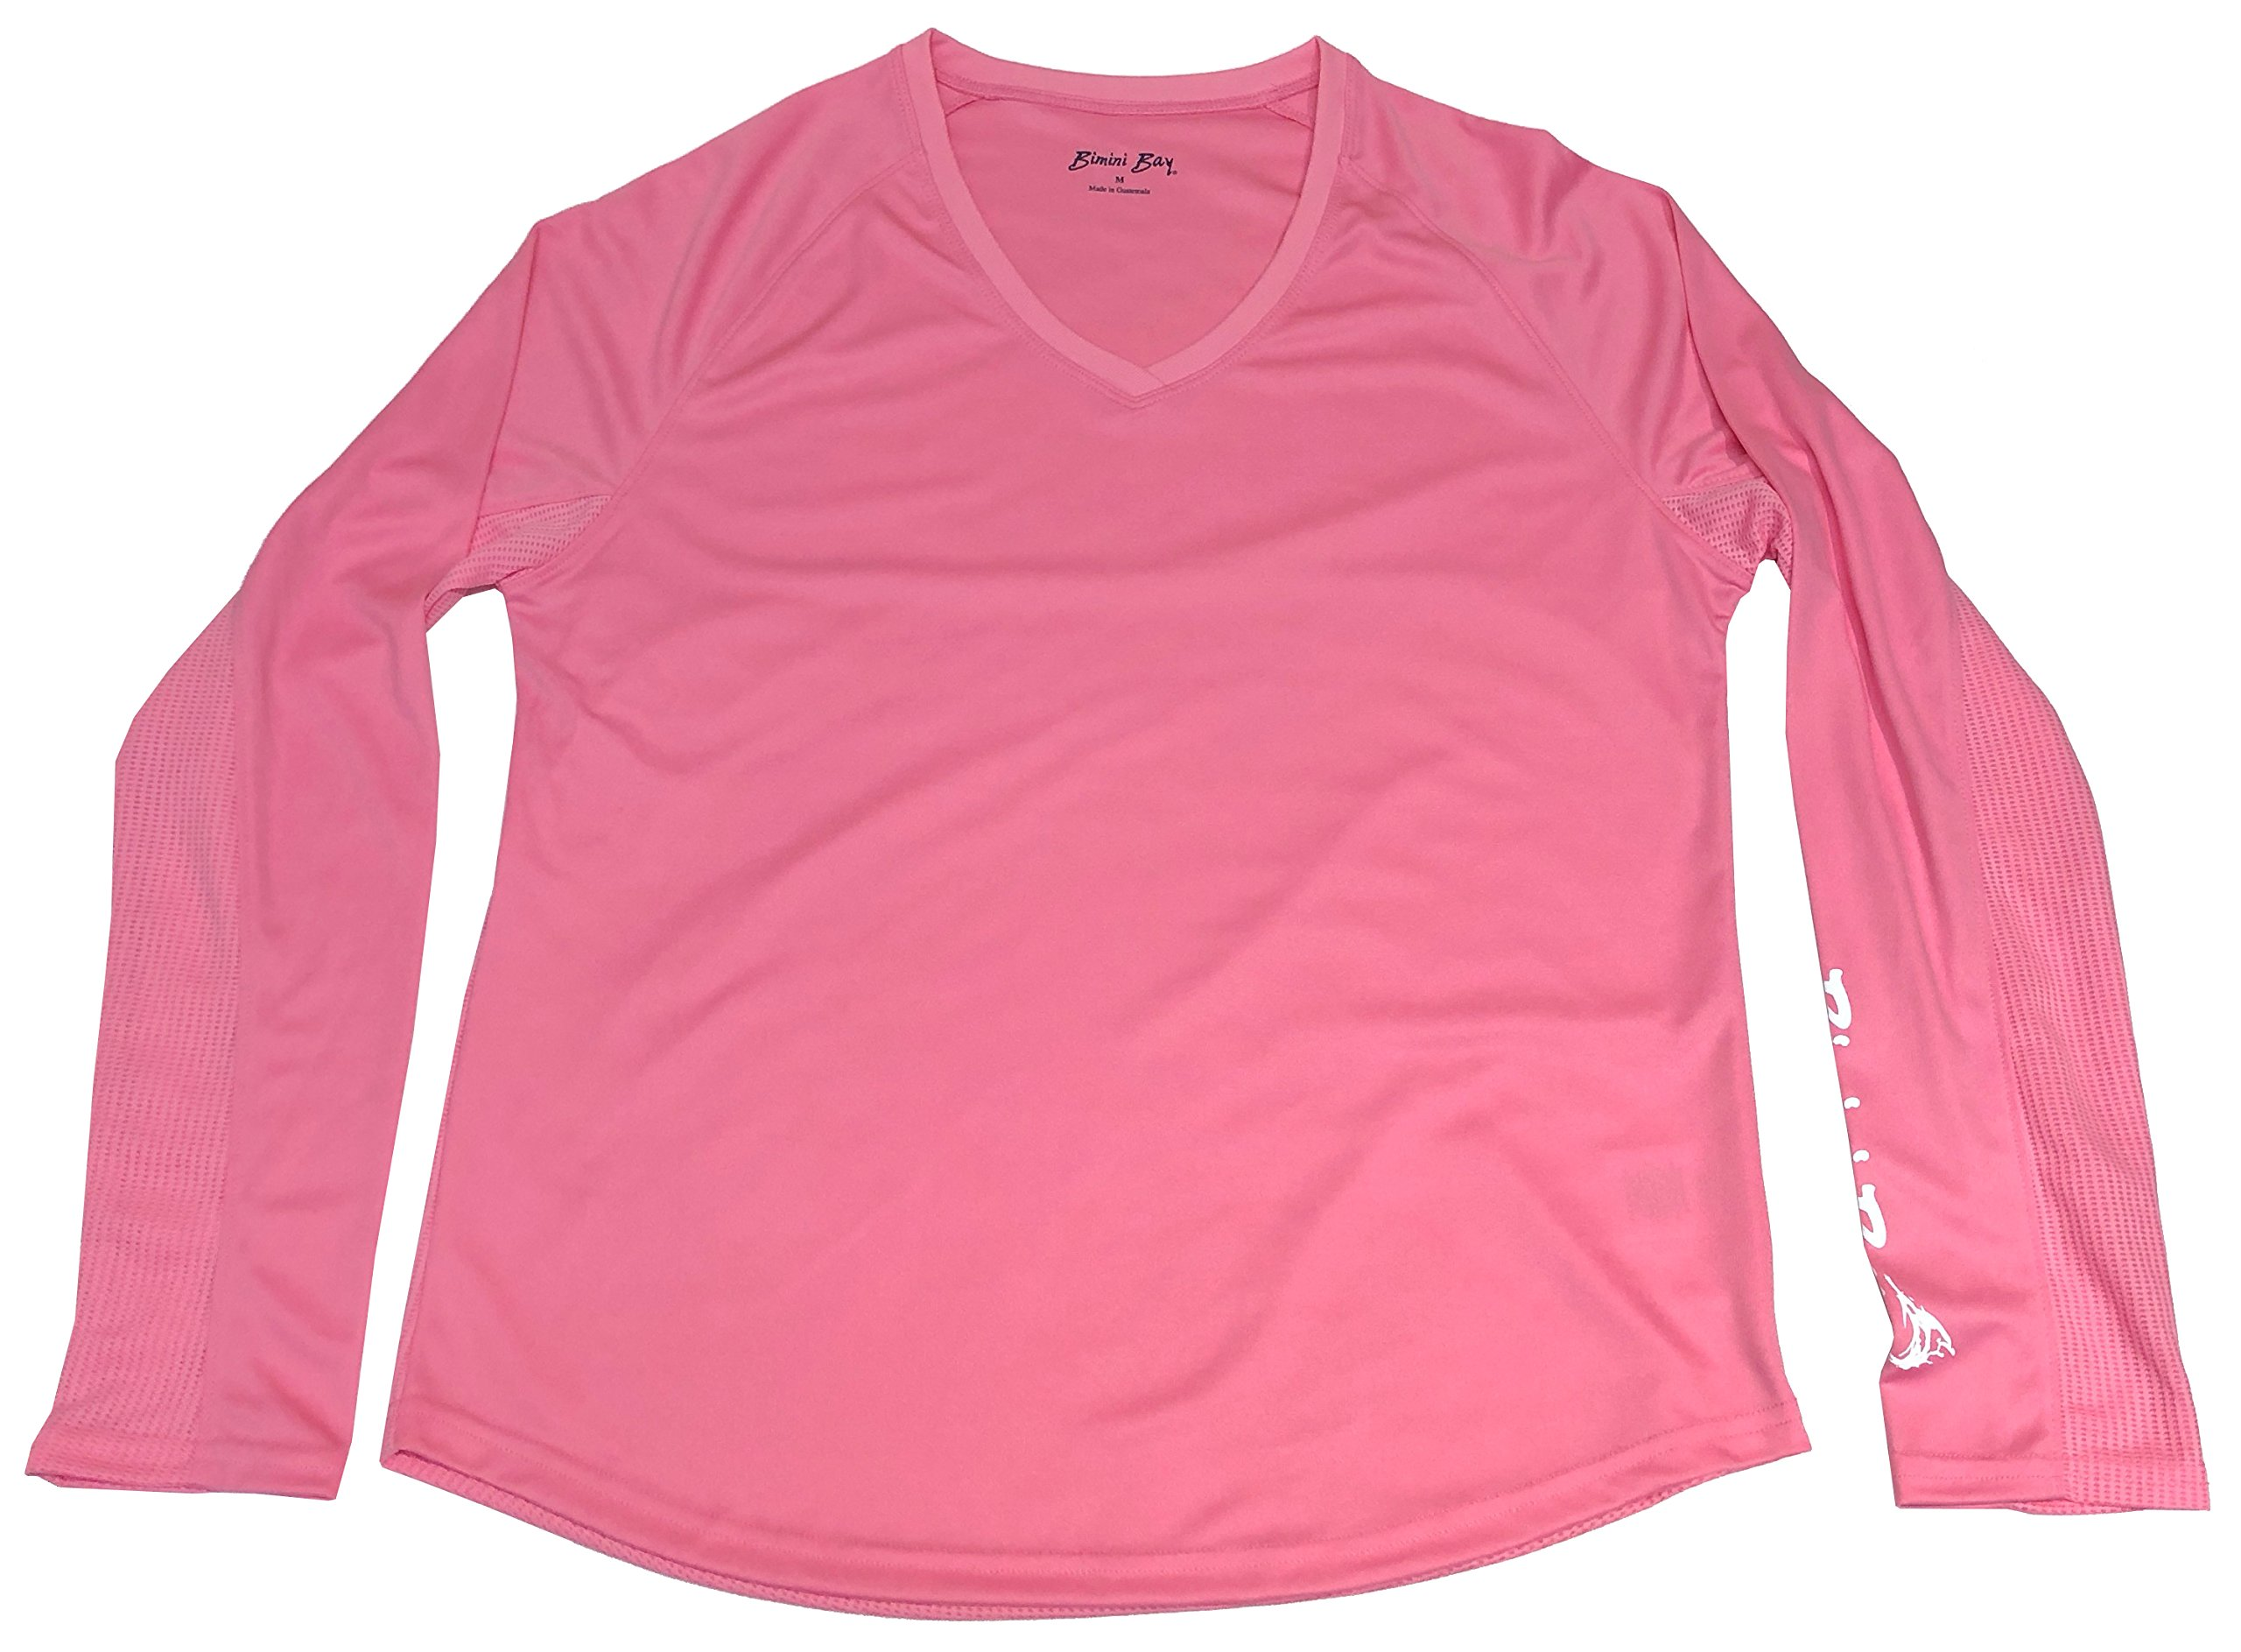 Bimini Bay Outfitters Women's Cabo Long Sleeve V-Neck Shirt (Pink, Large) by Bimini Bay Outfitters